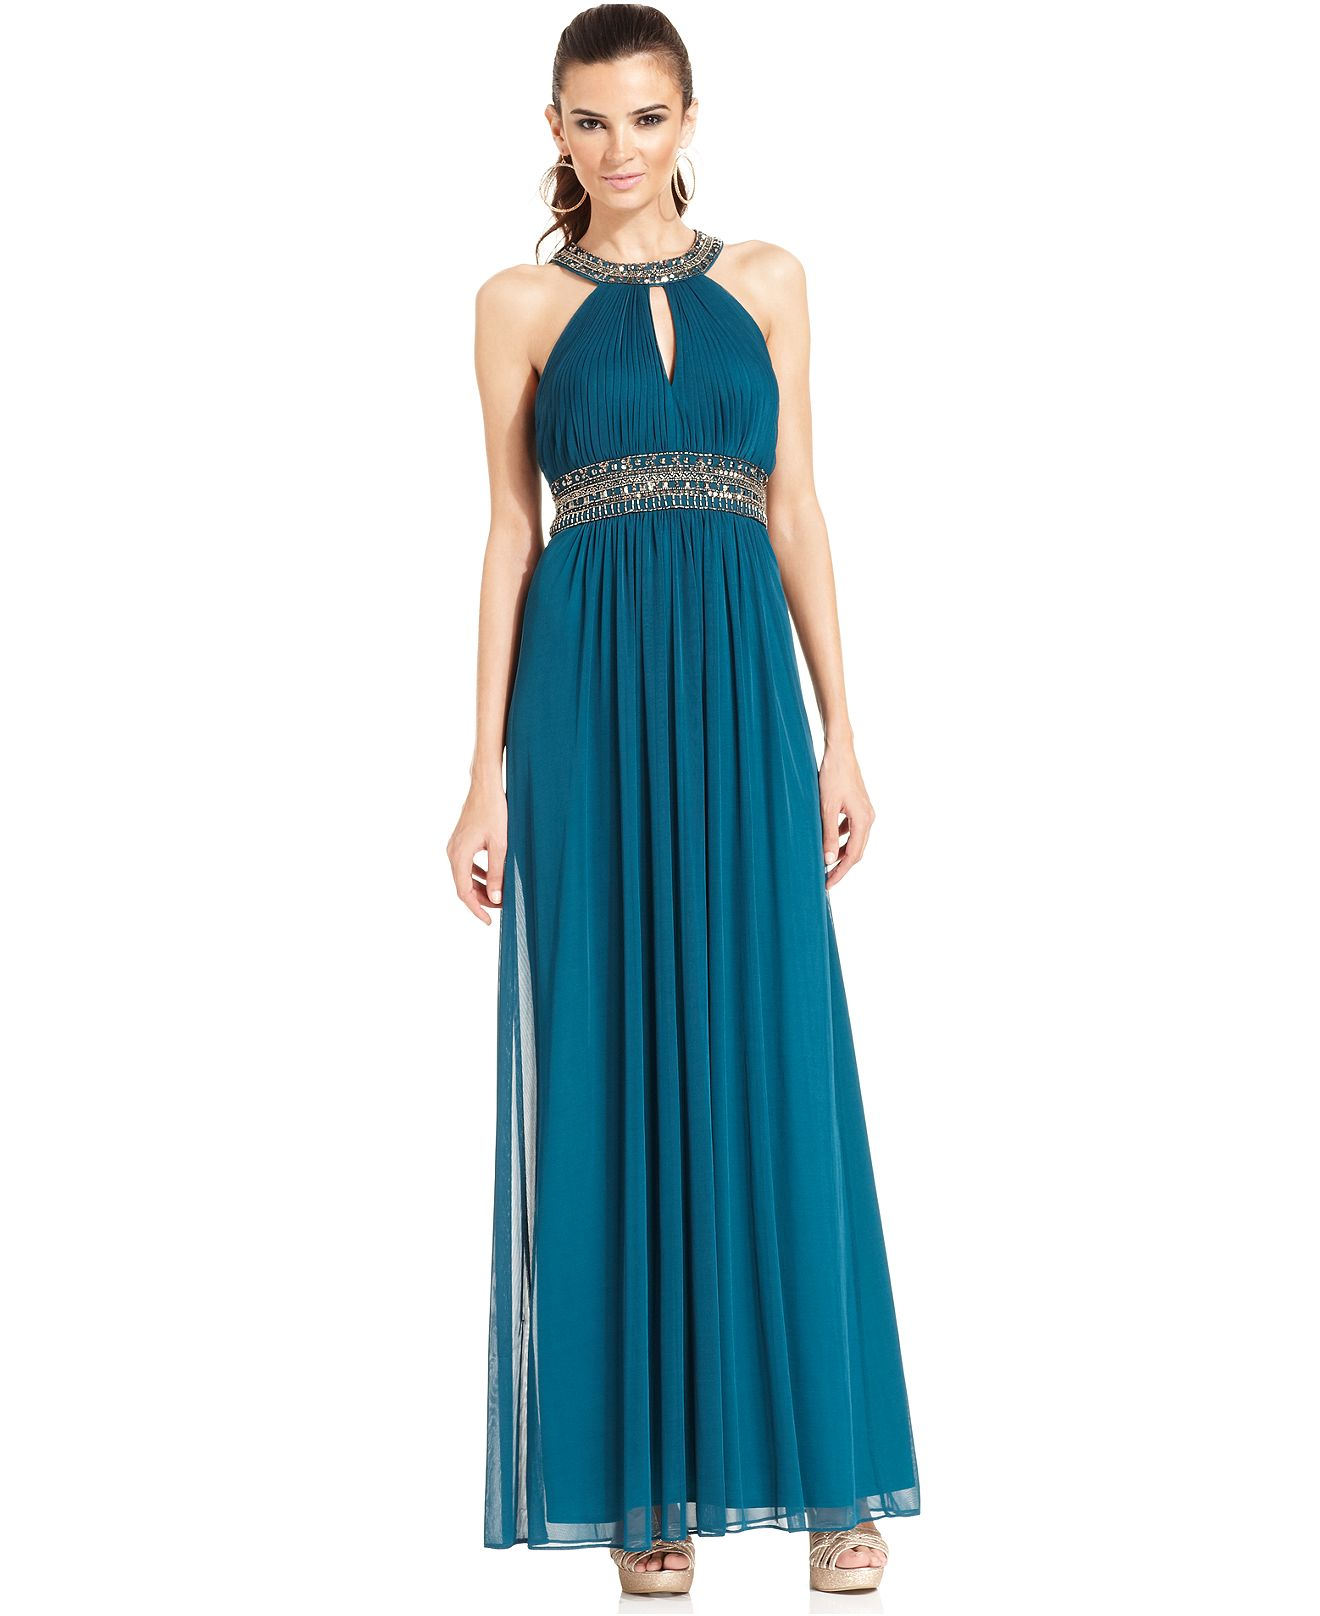 Long Purple Prom Dress Macys - Long Dresses Online